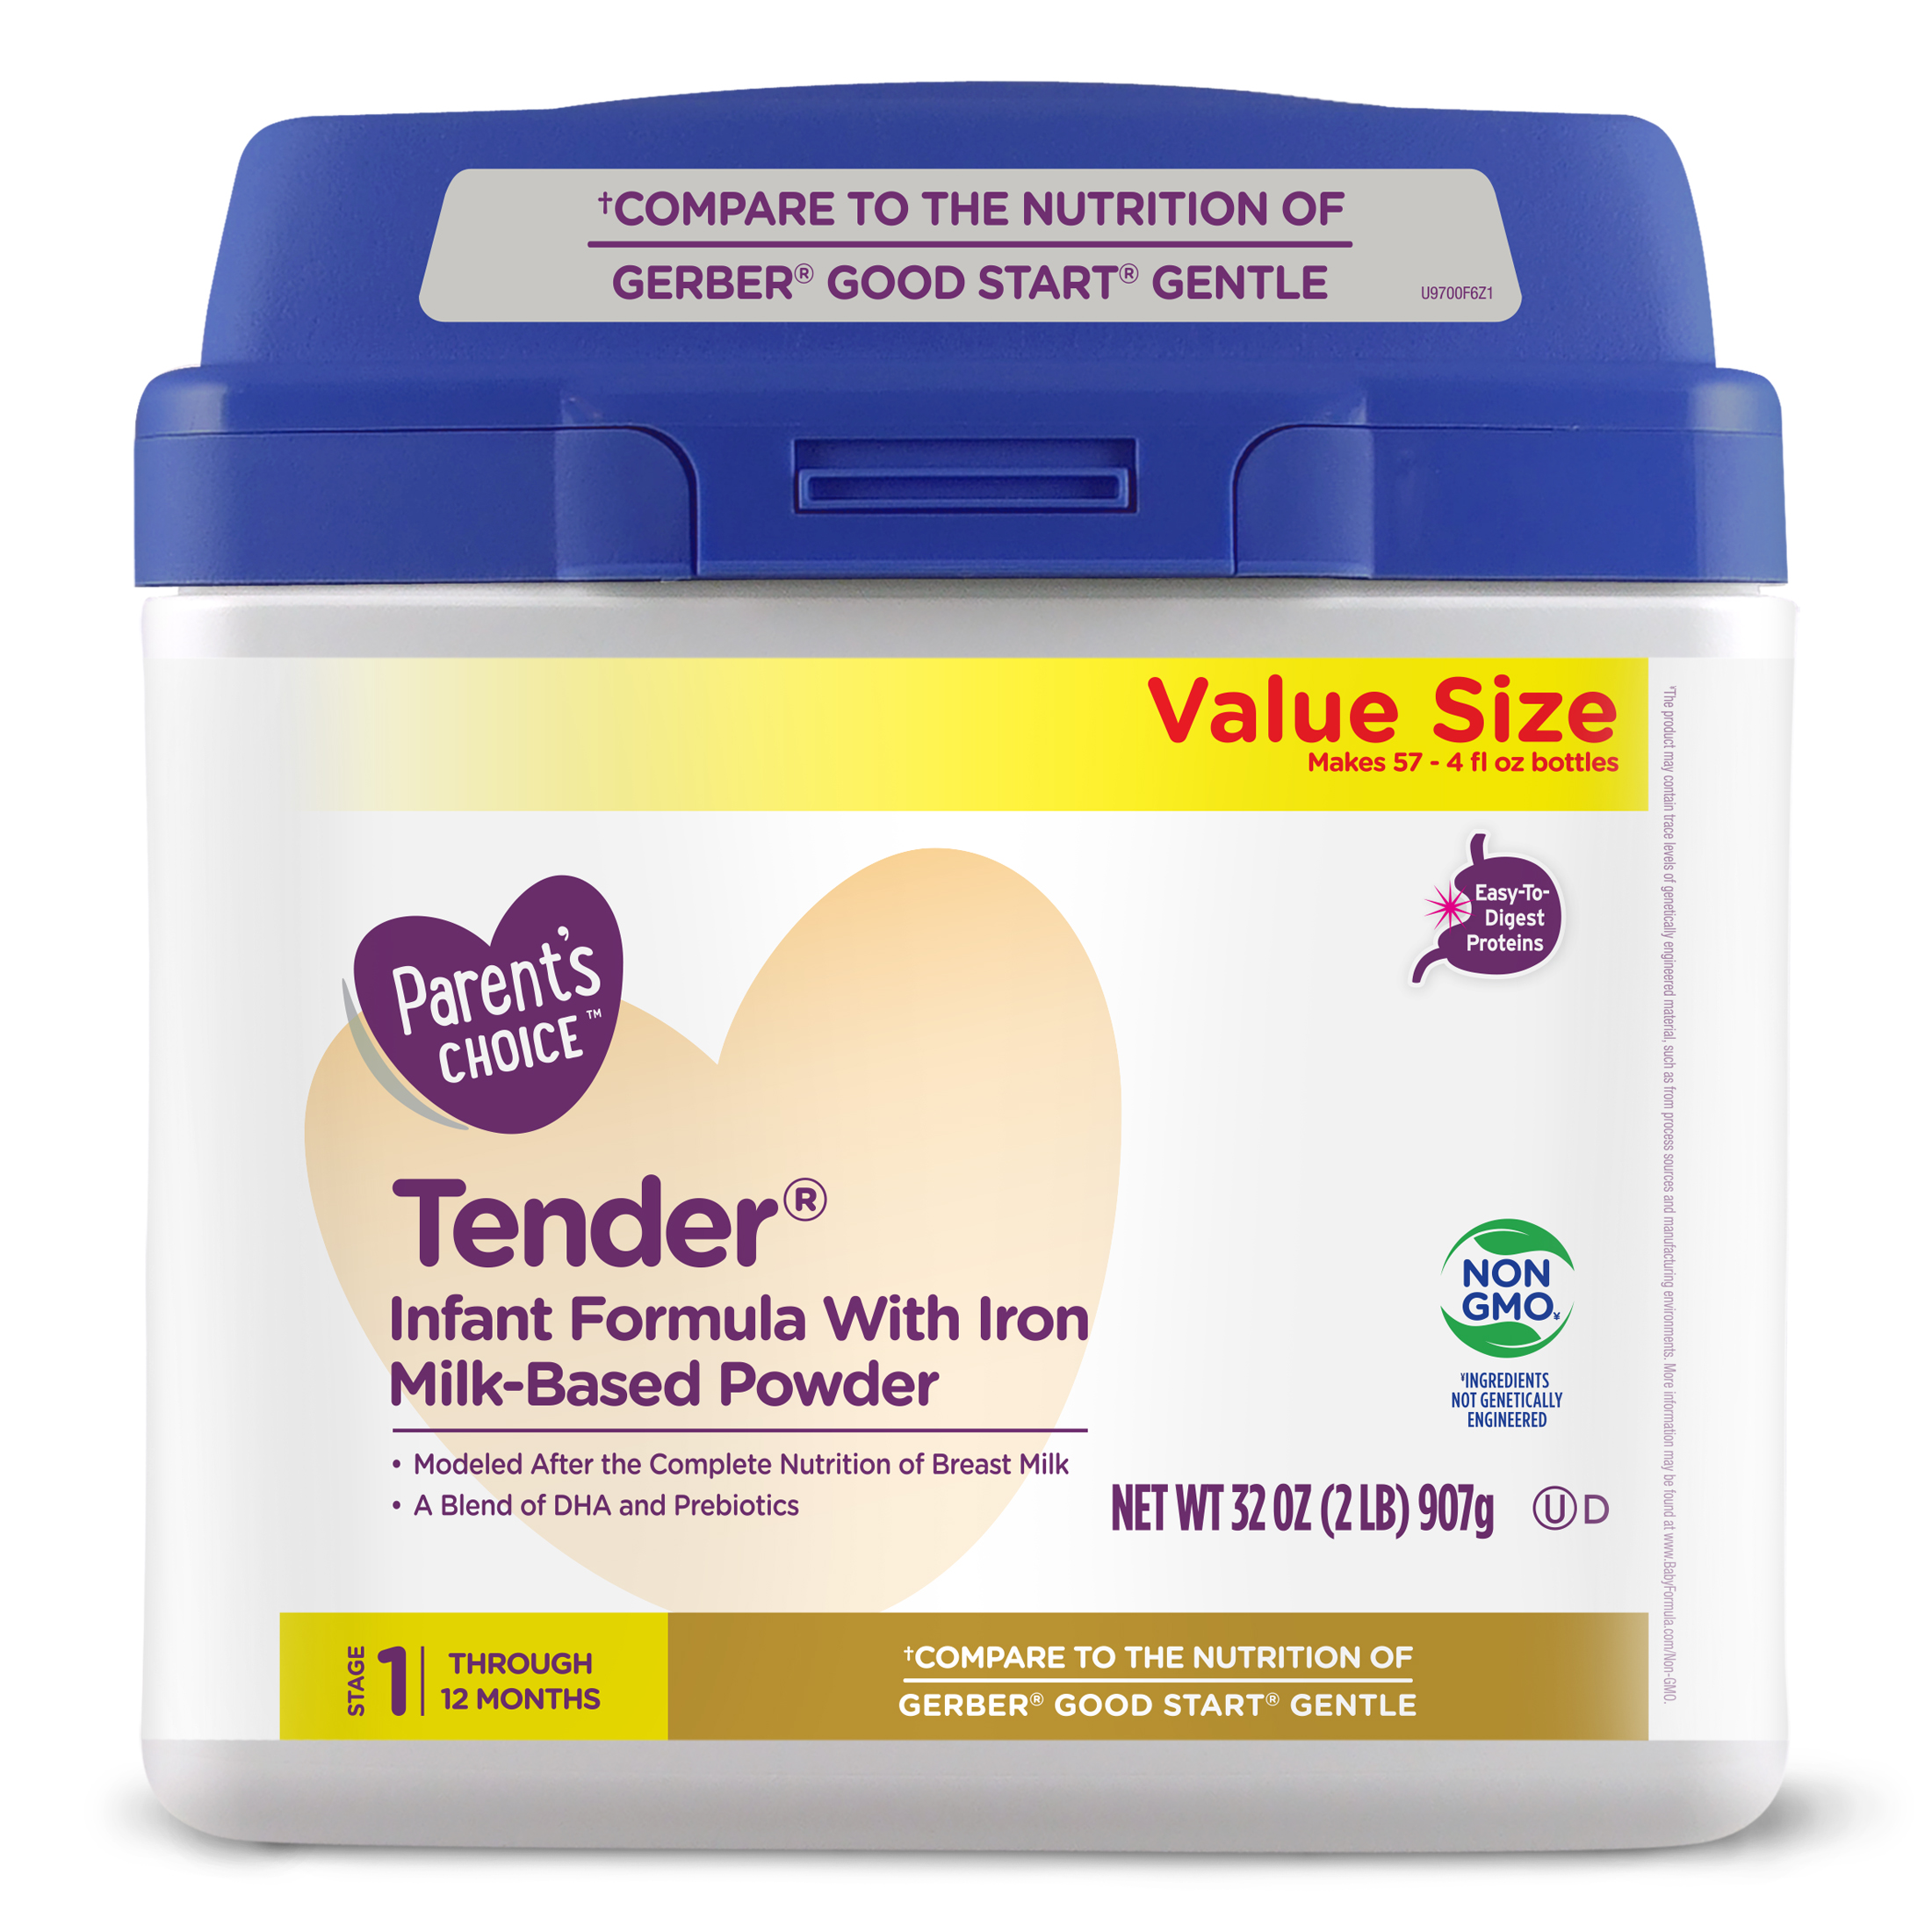 Parent's Choice Tender Infant Formula with Iron, Powder, 32 oz